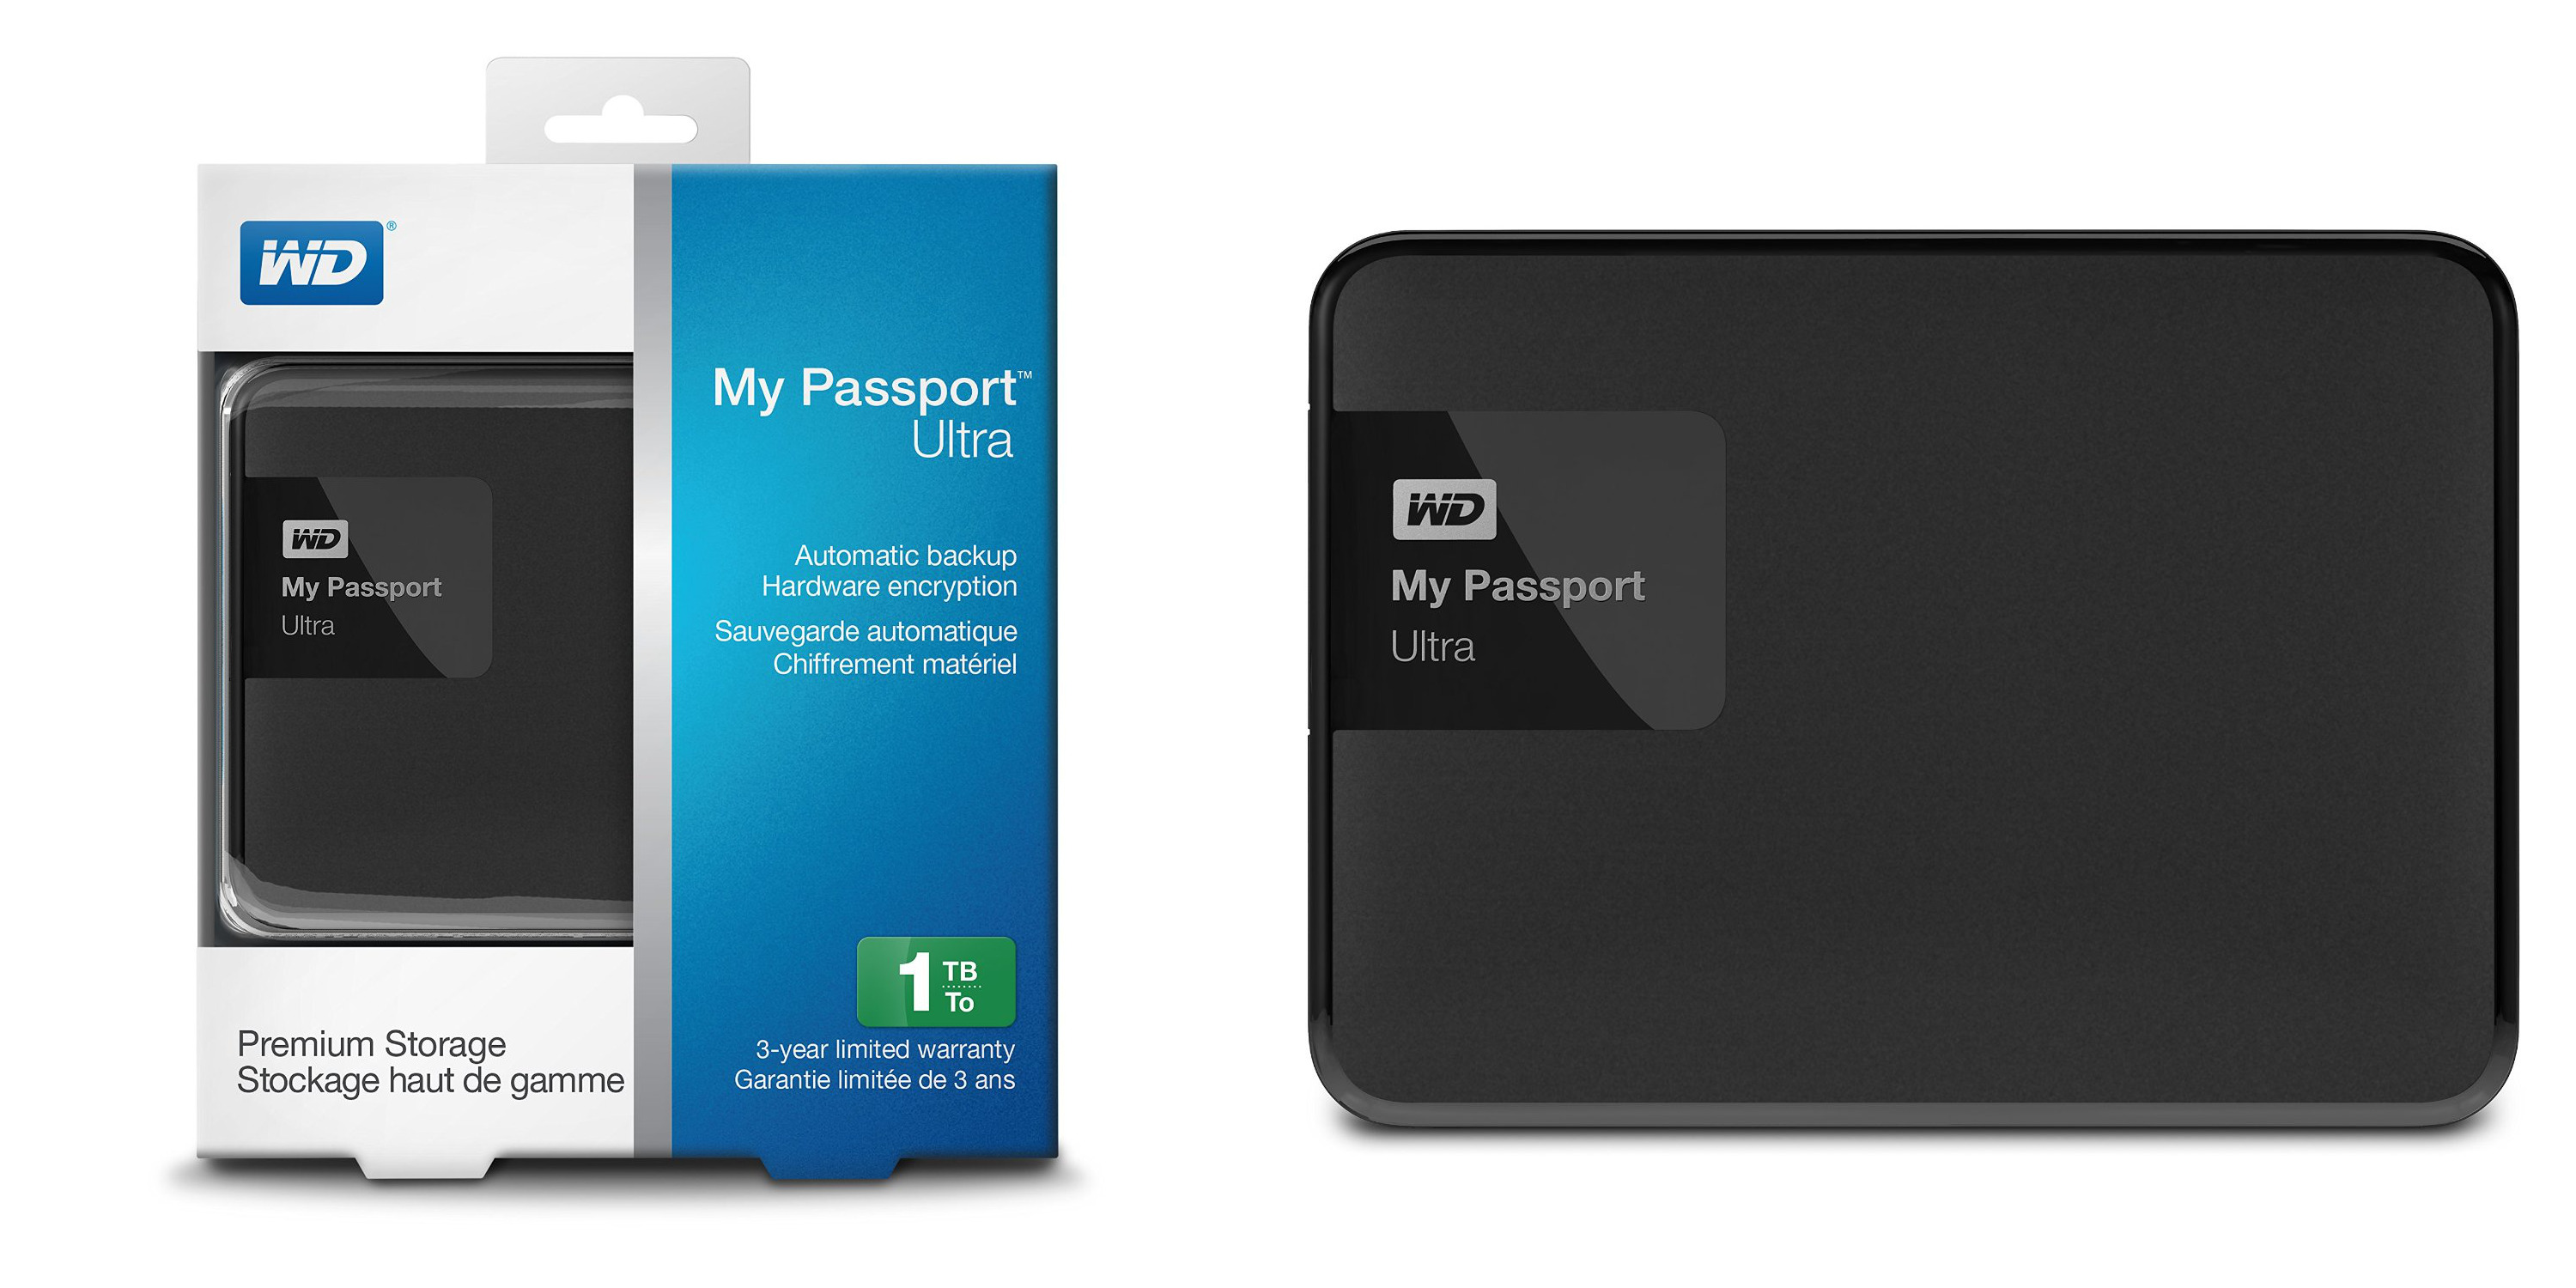 wd-my-passport-ultra-1tb-3-0-usb-portable-hard-drive-4